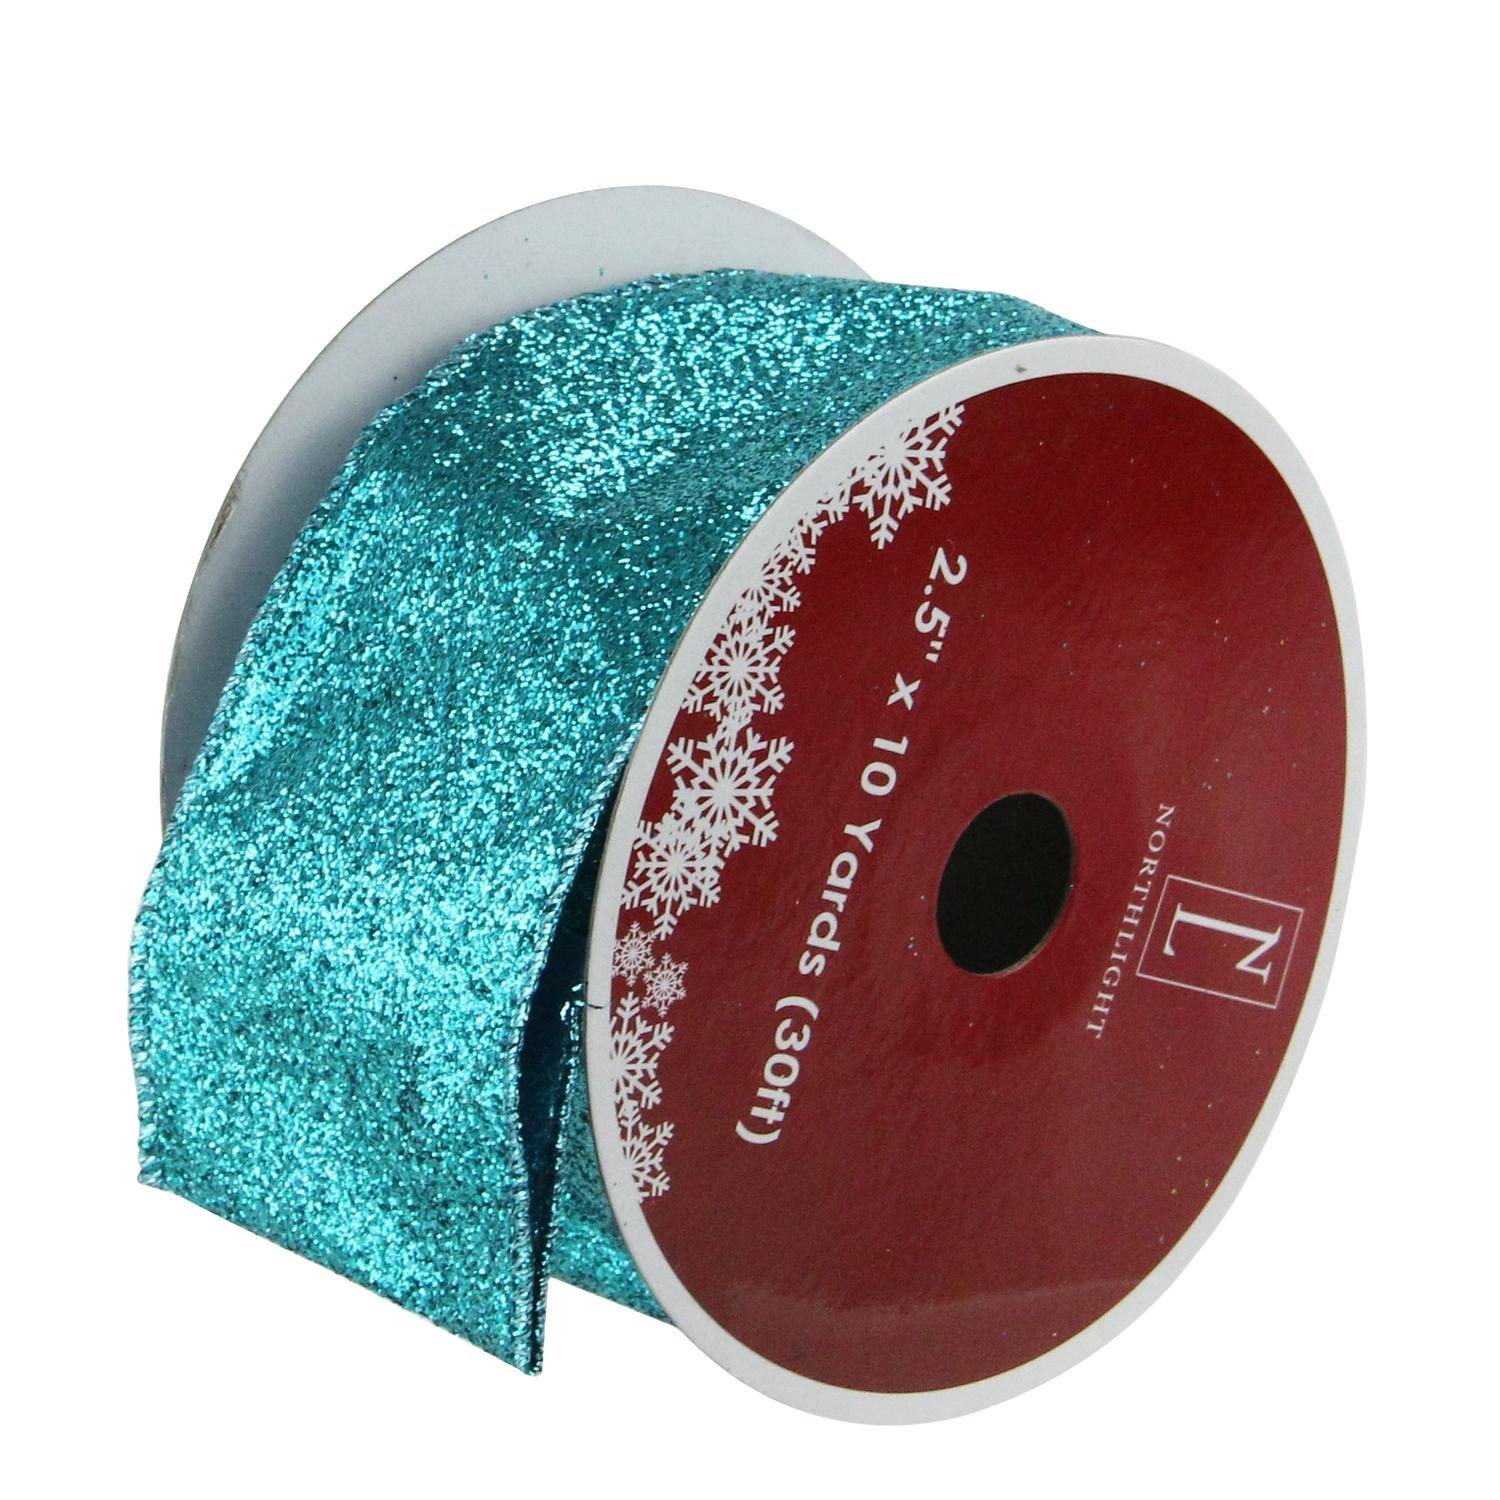 Northlight Pack of 12 Shimmering Teal Solid Wired Christmas Craft Ribbon Spools - 2.5'' x 120 Yards Total